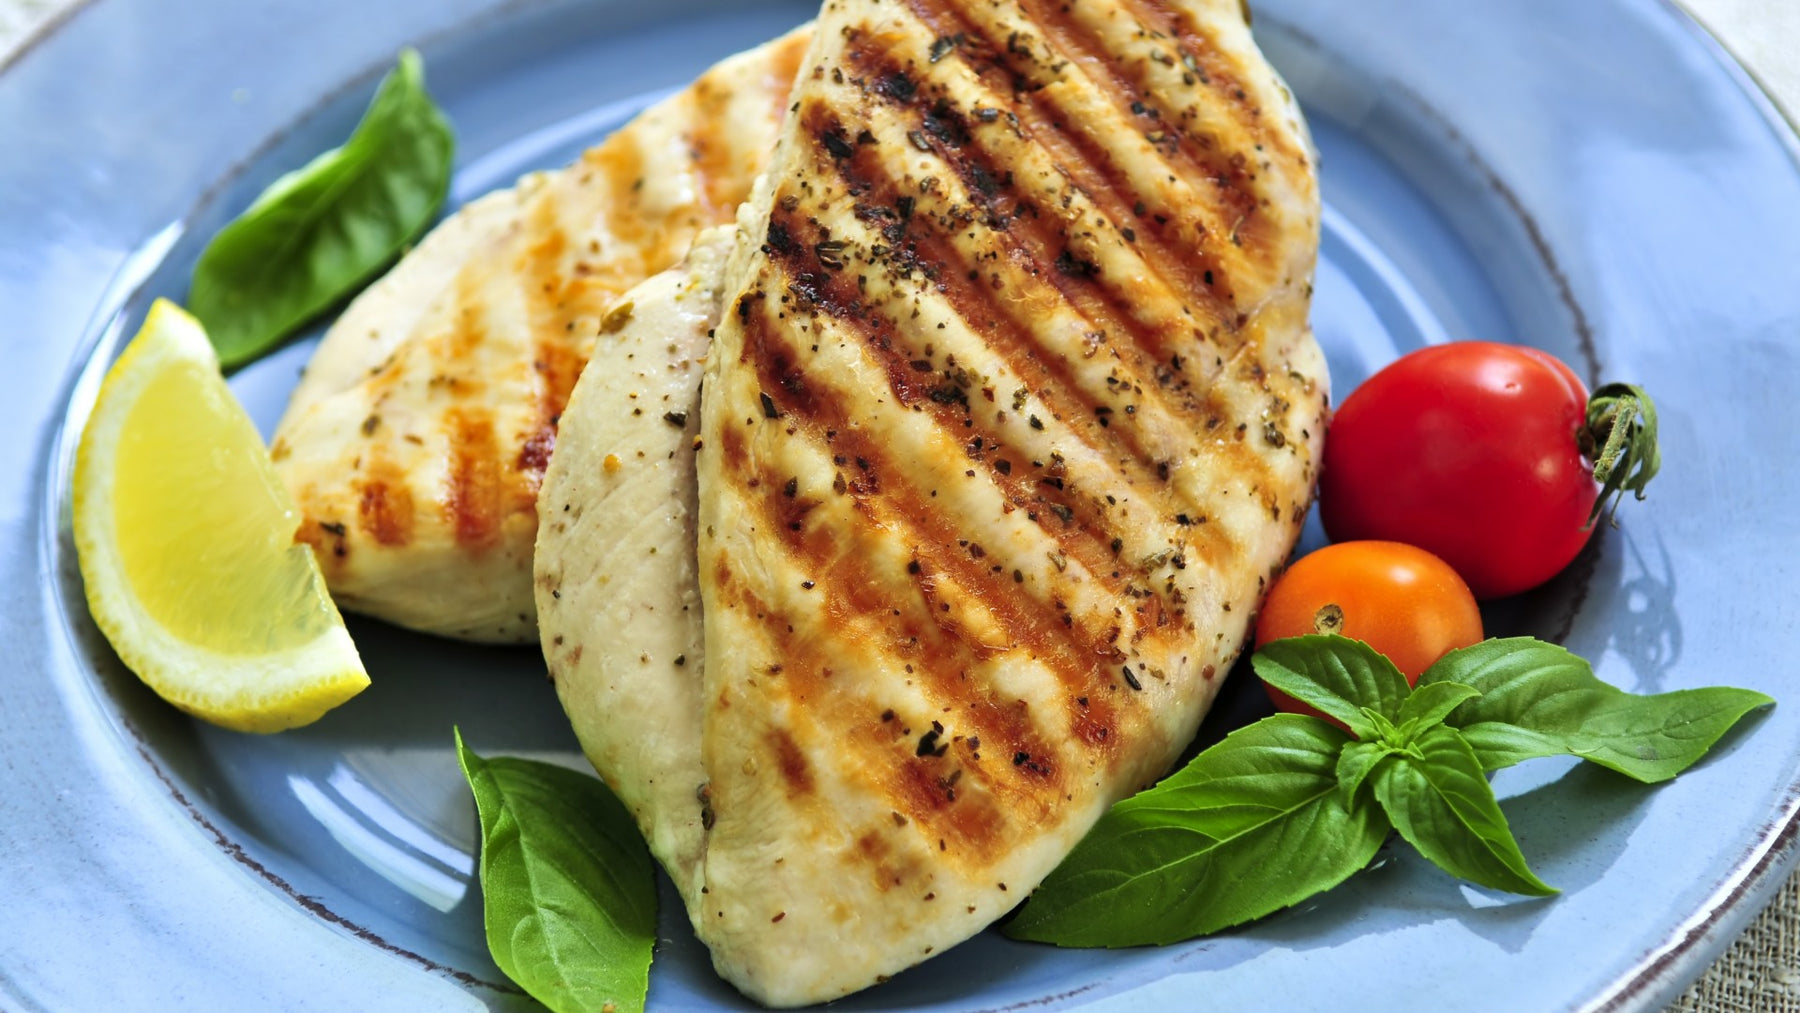 How Many Calories in a Chicken Breast?